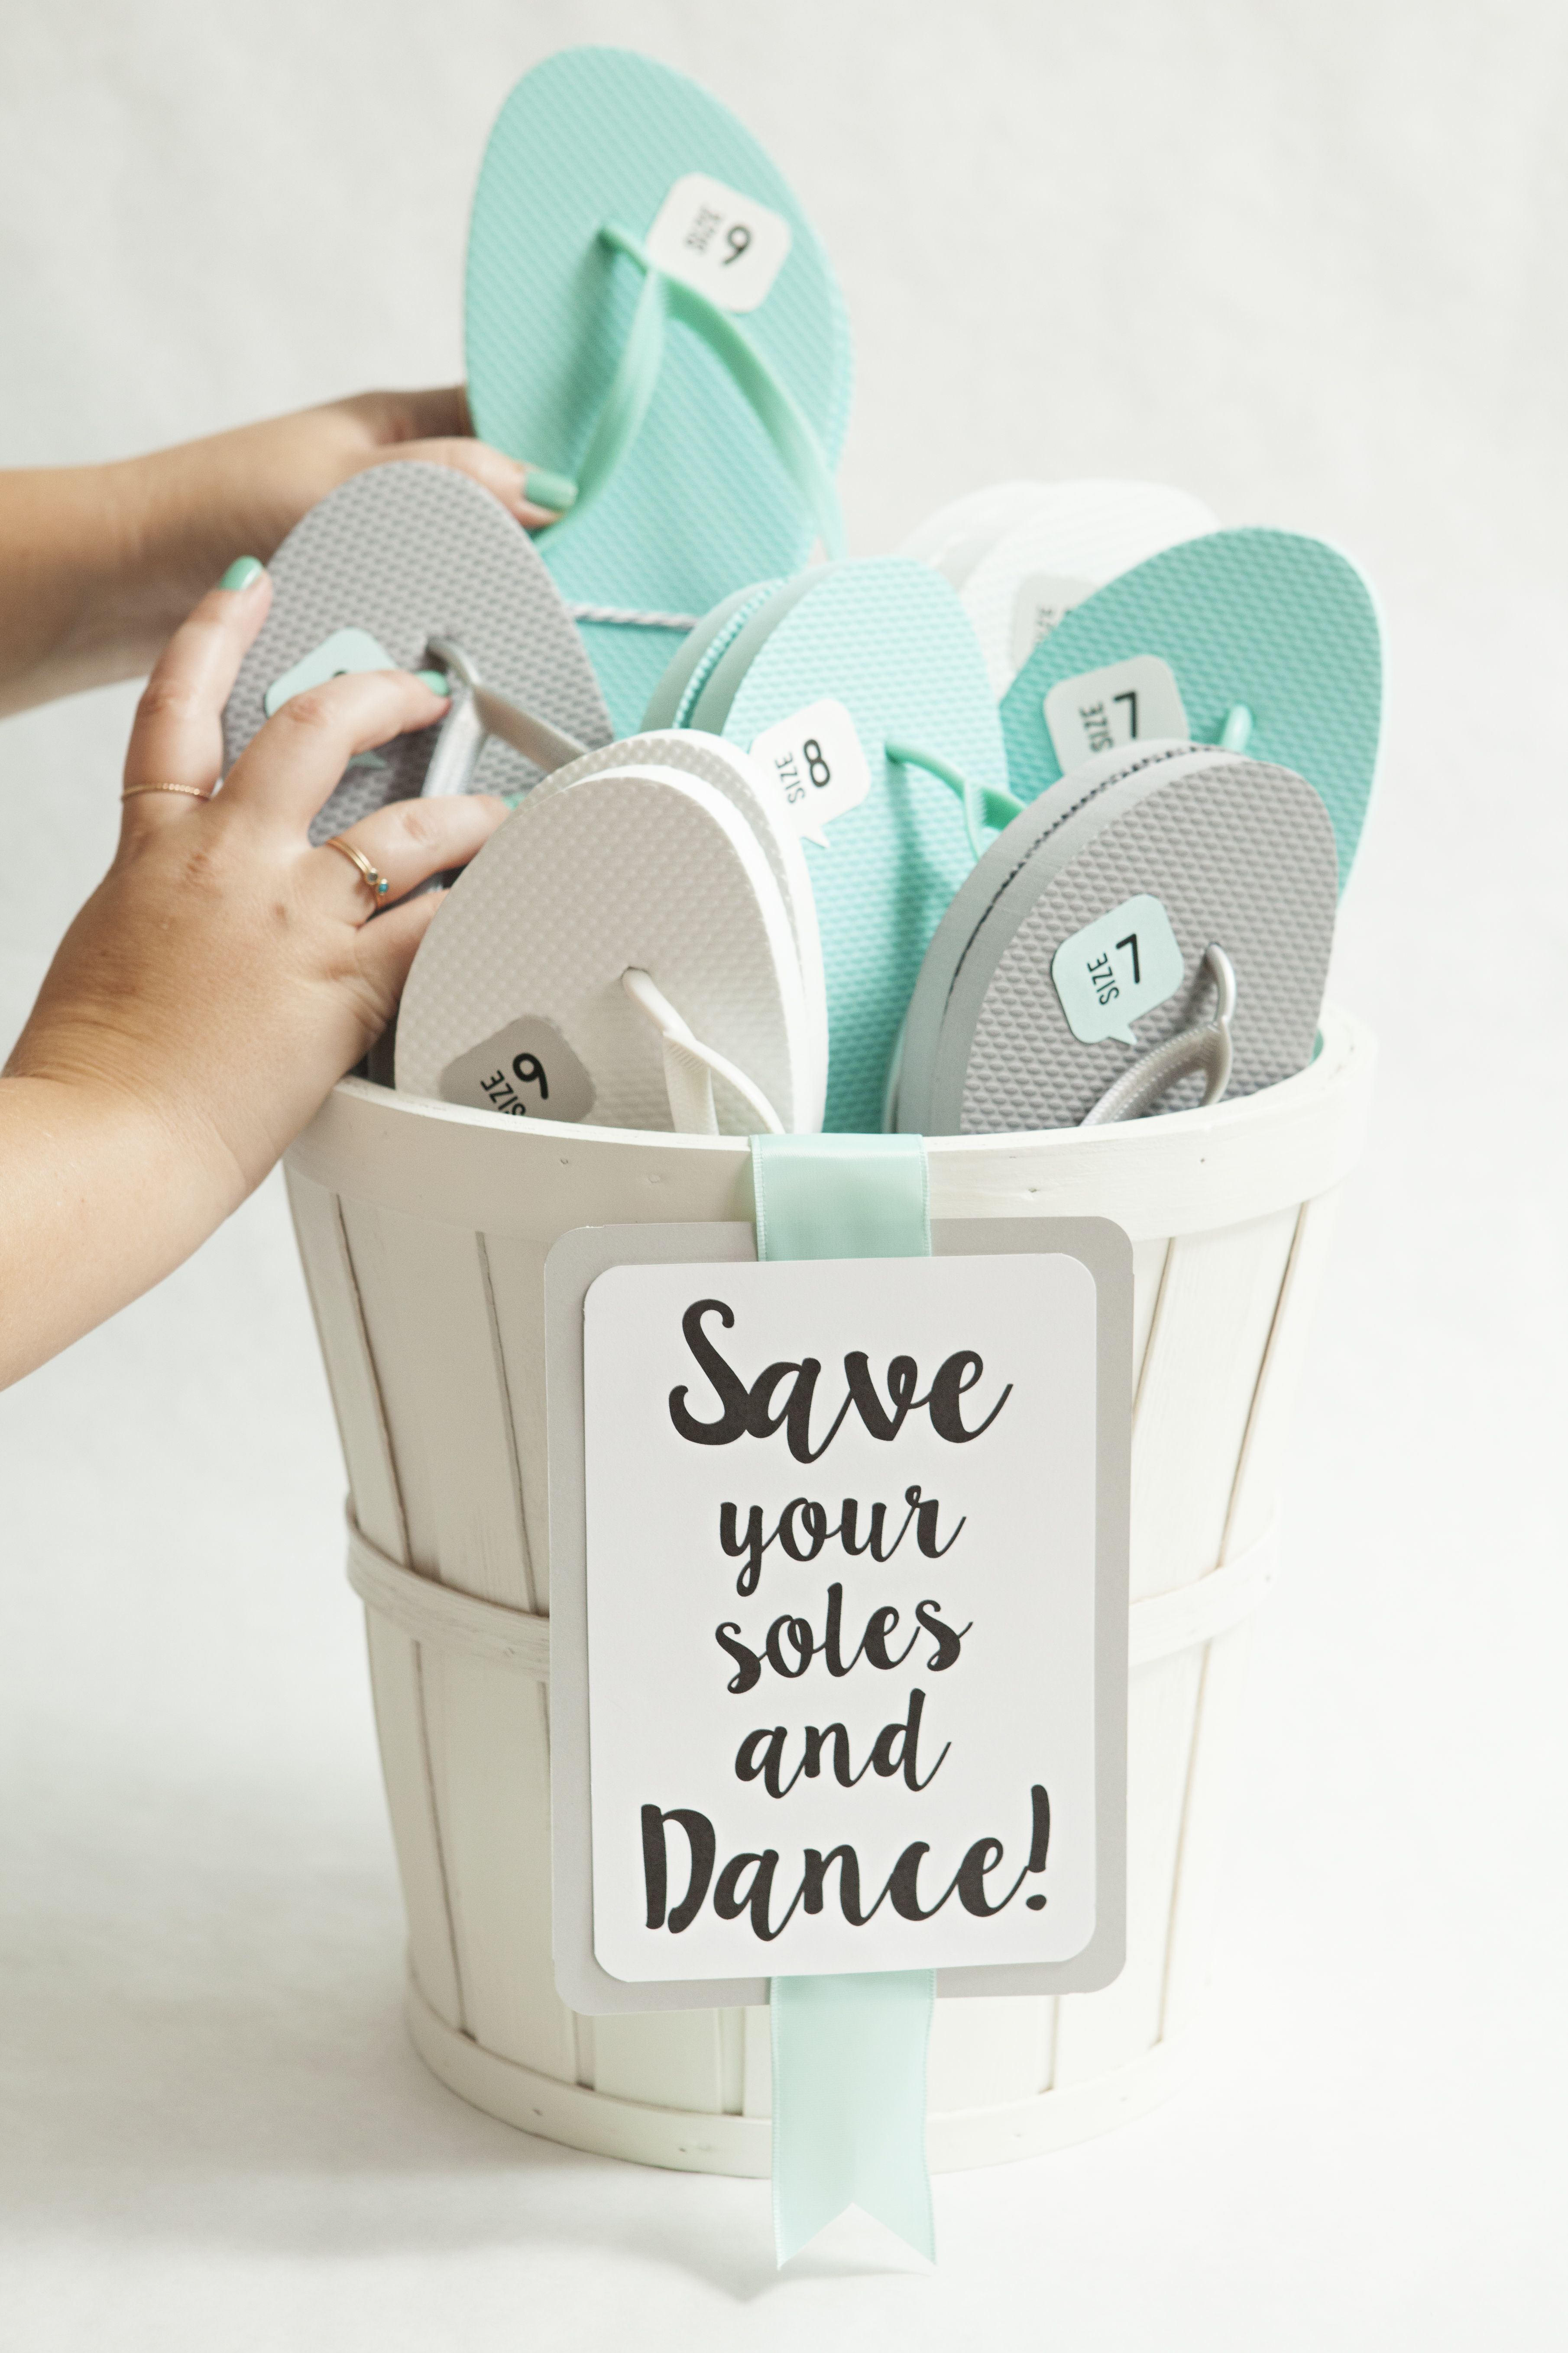 b6db43d637d9 This bucket of flip flops is the perfect favor for wedding guests. Such a  cute and clever idea!